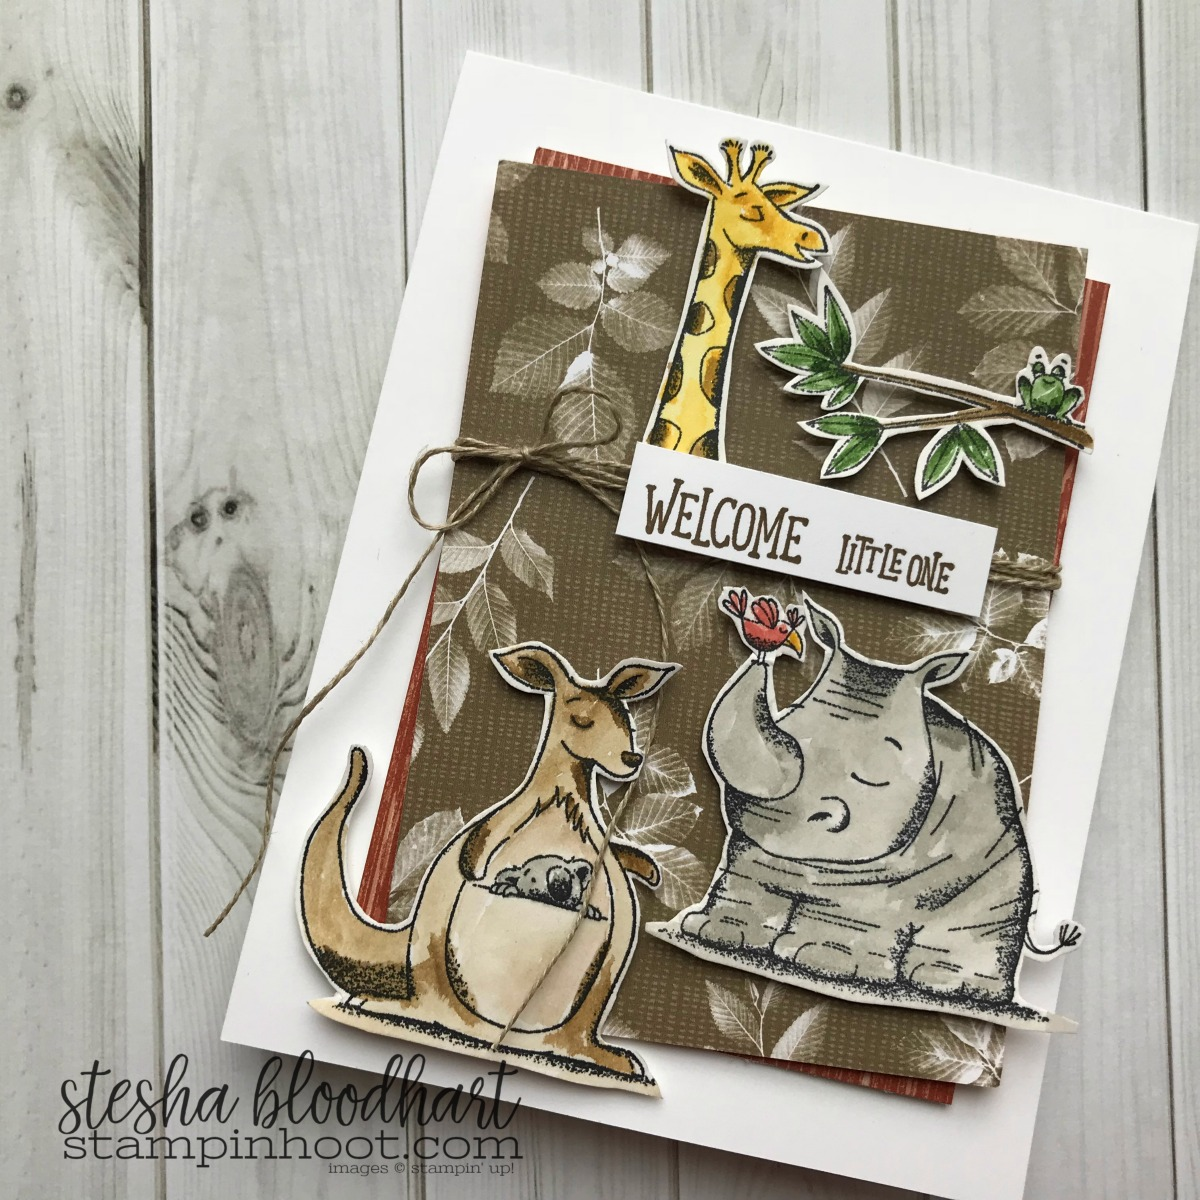 tgifc155 Sketch: Meet Animal Outing | Stampin' Hoot